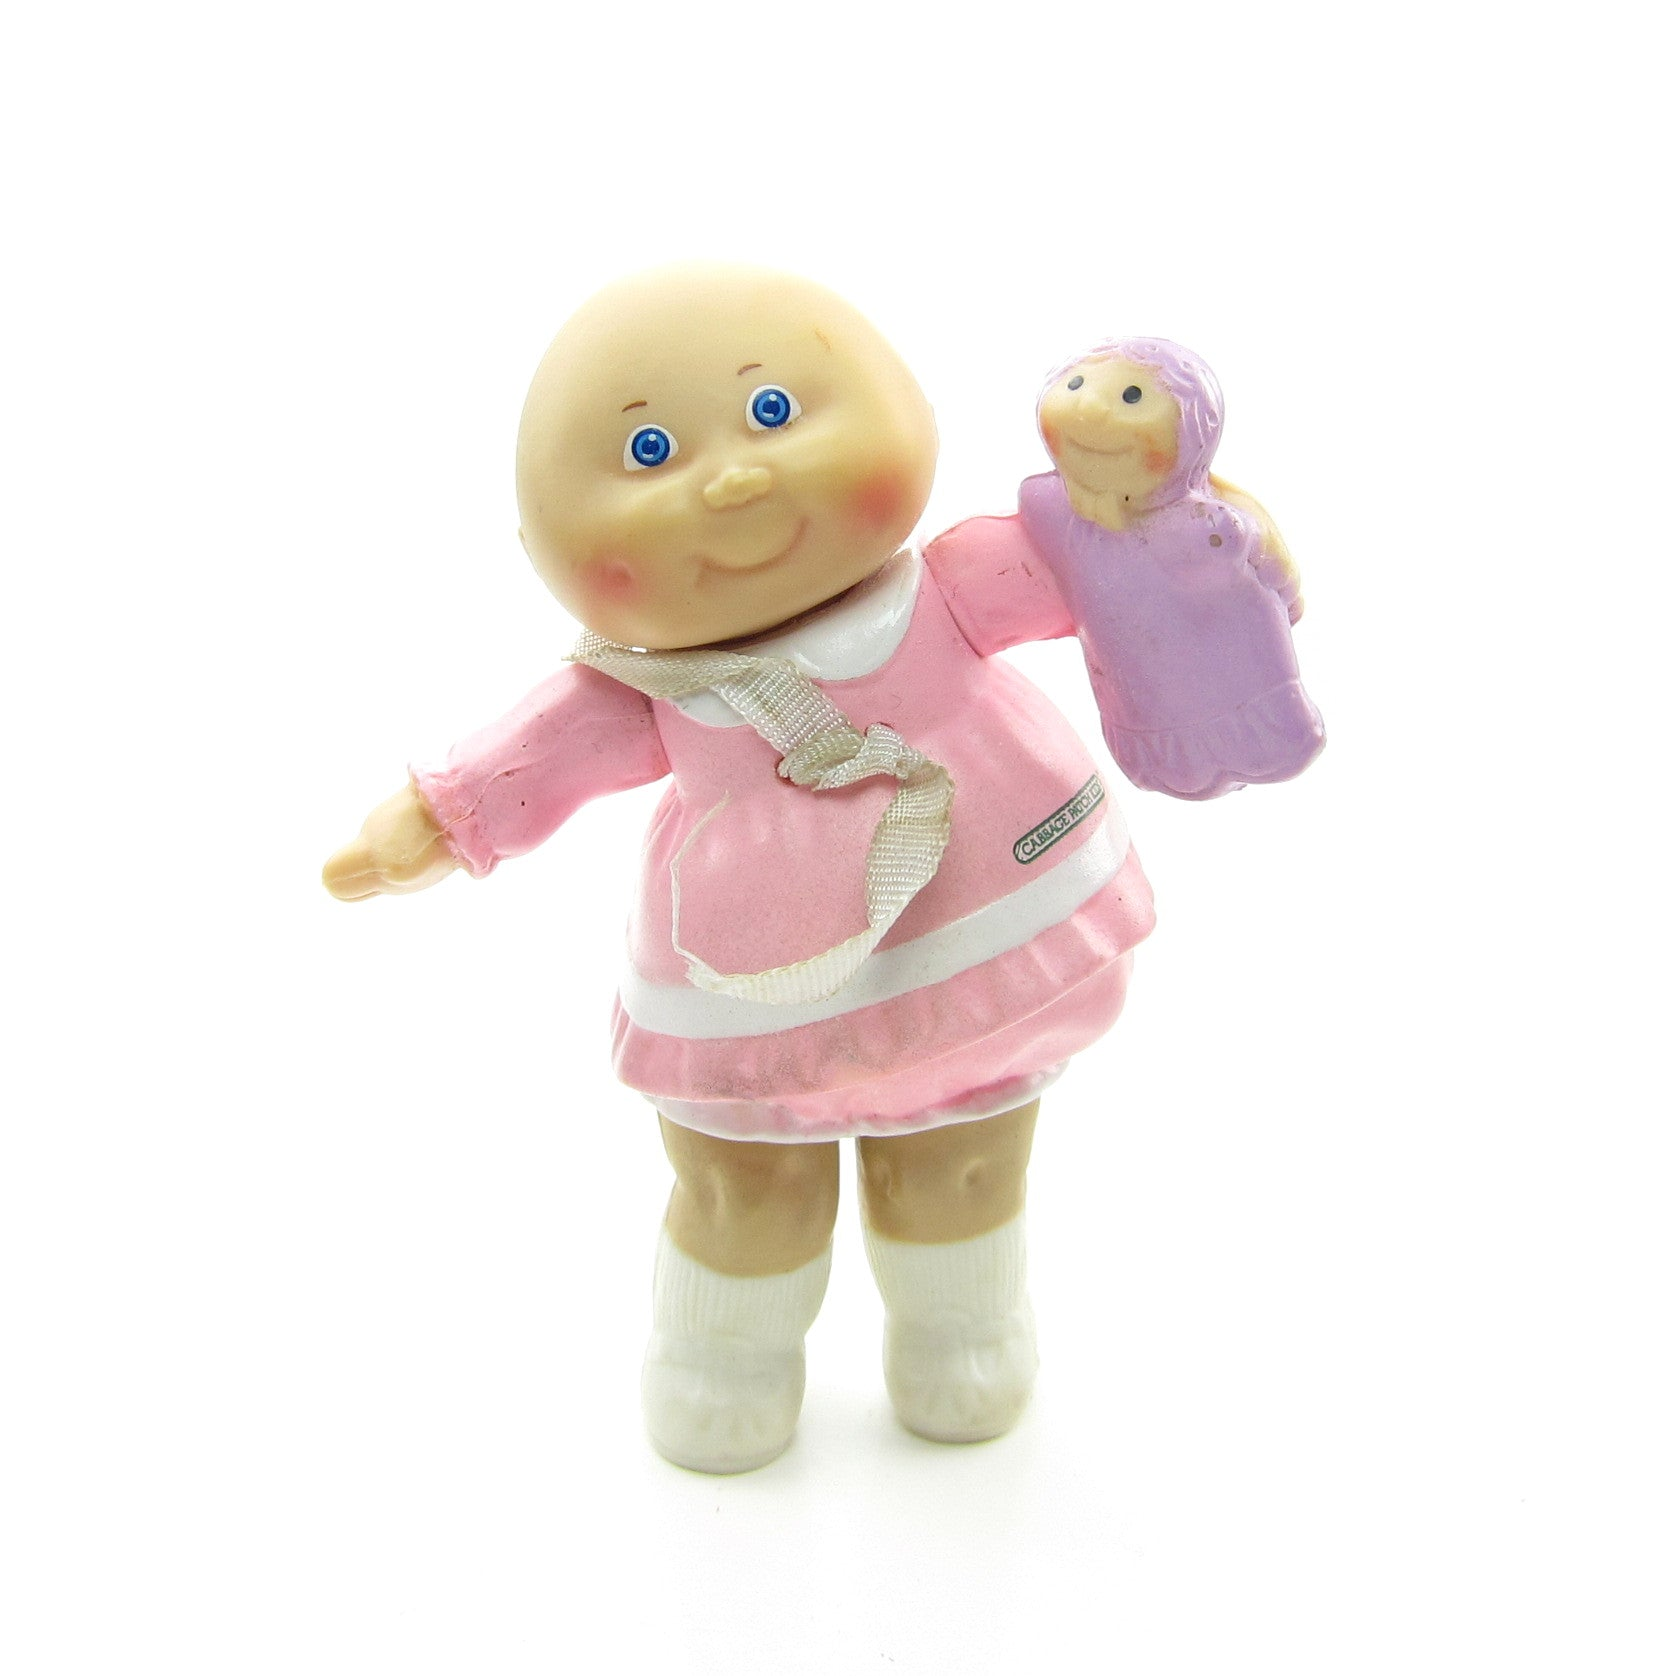 Cabbage Patch Kids Preemie girl in pink dress poseable figure